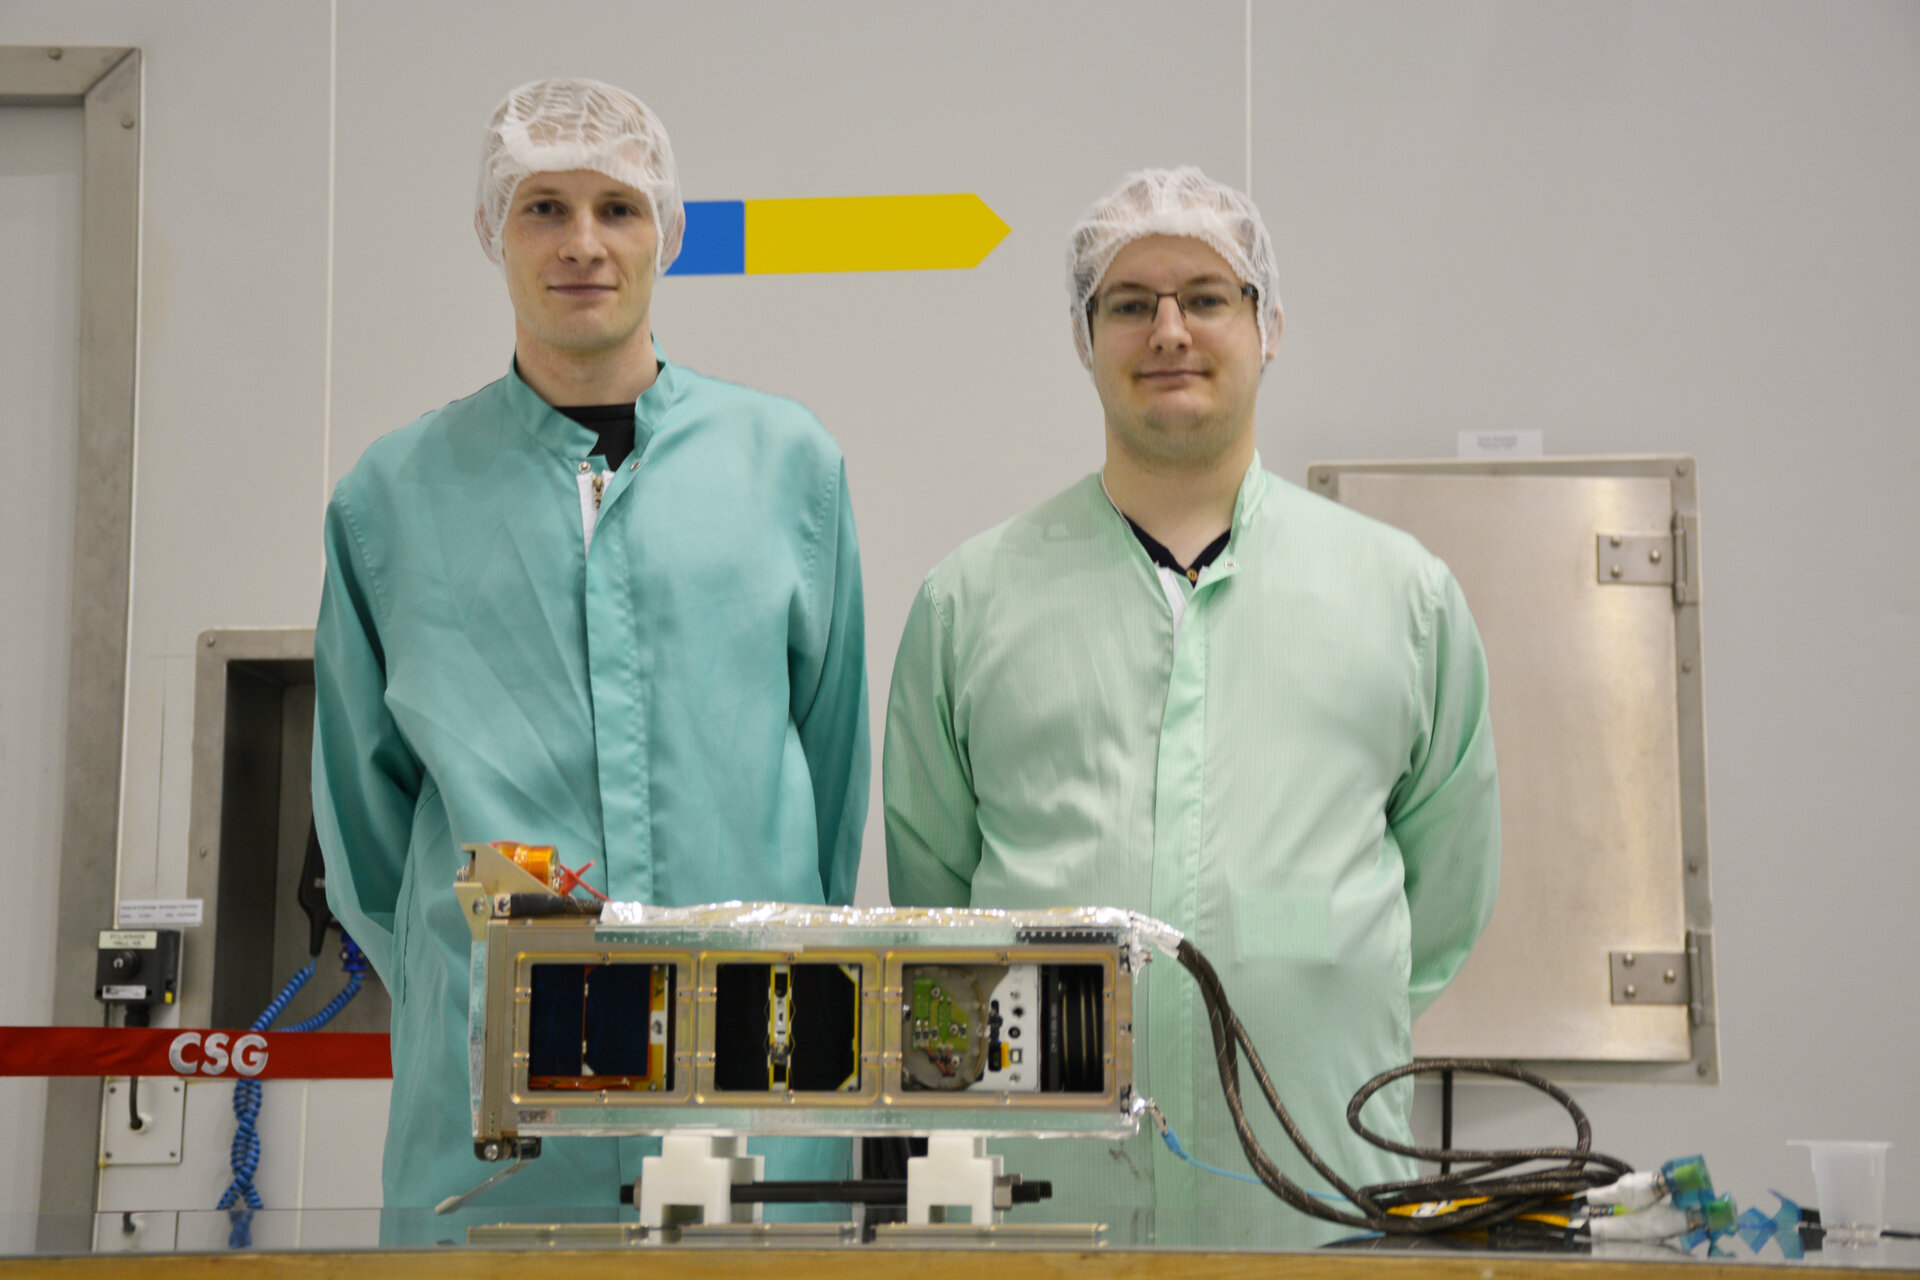 AAUSAT4 team with P-POD